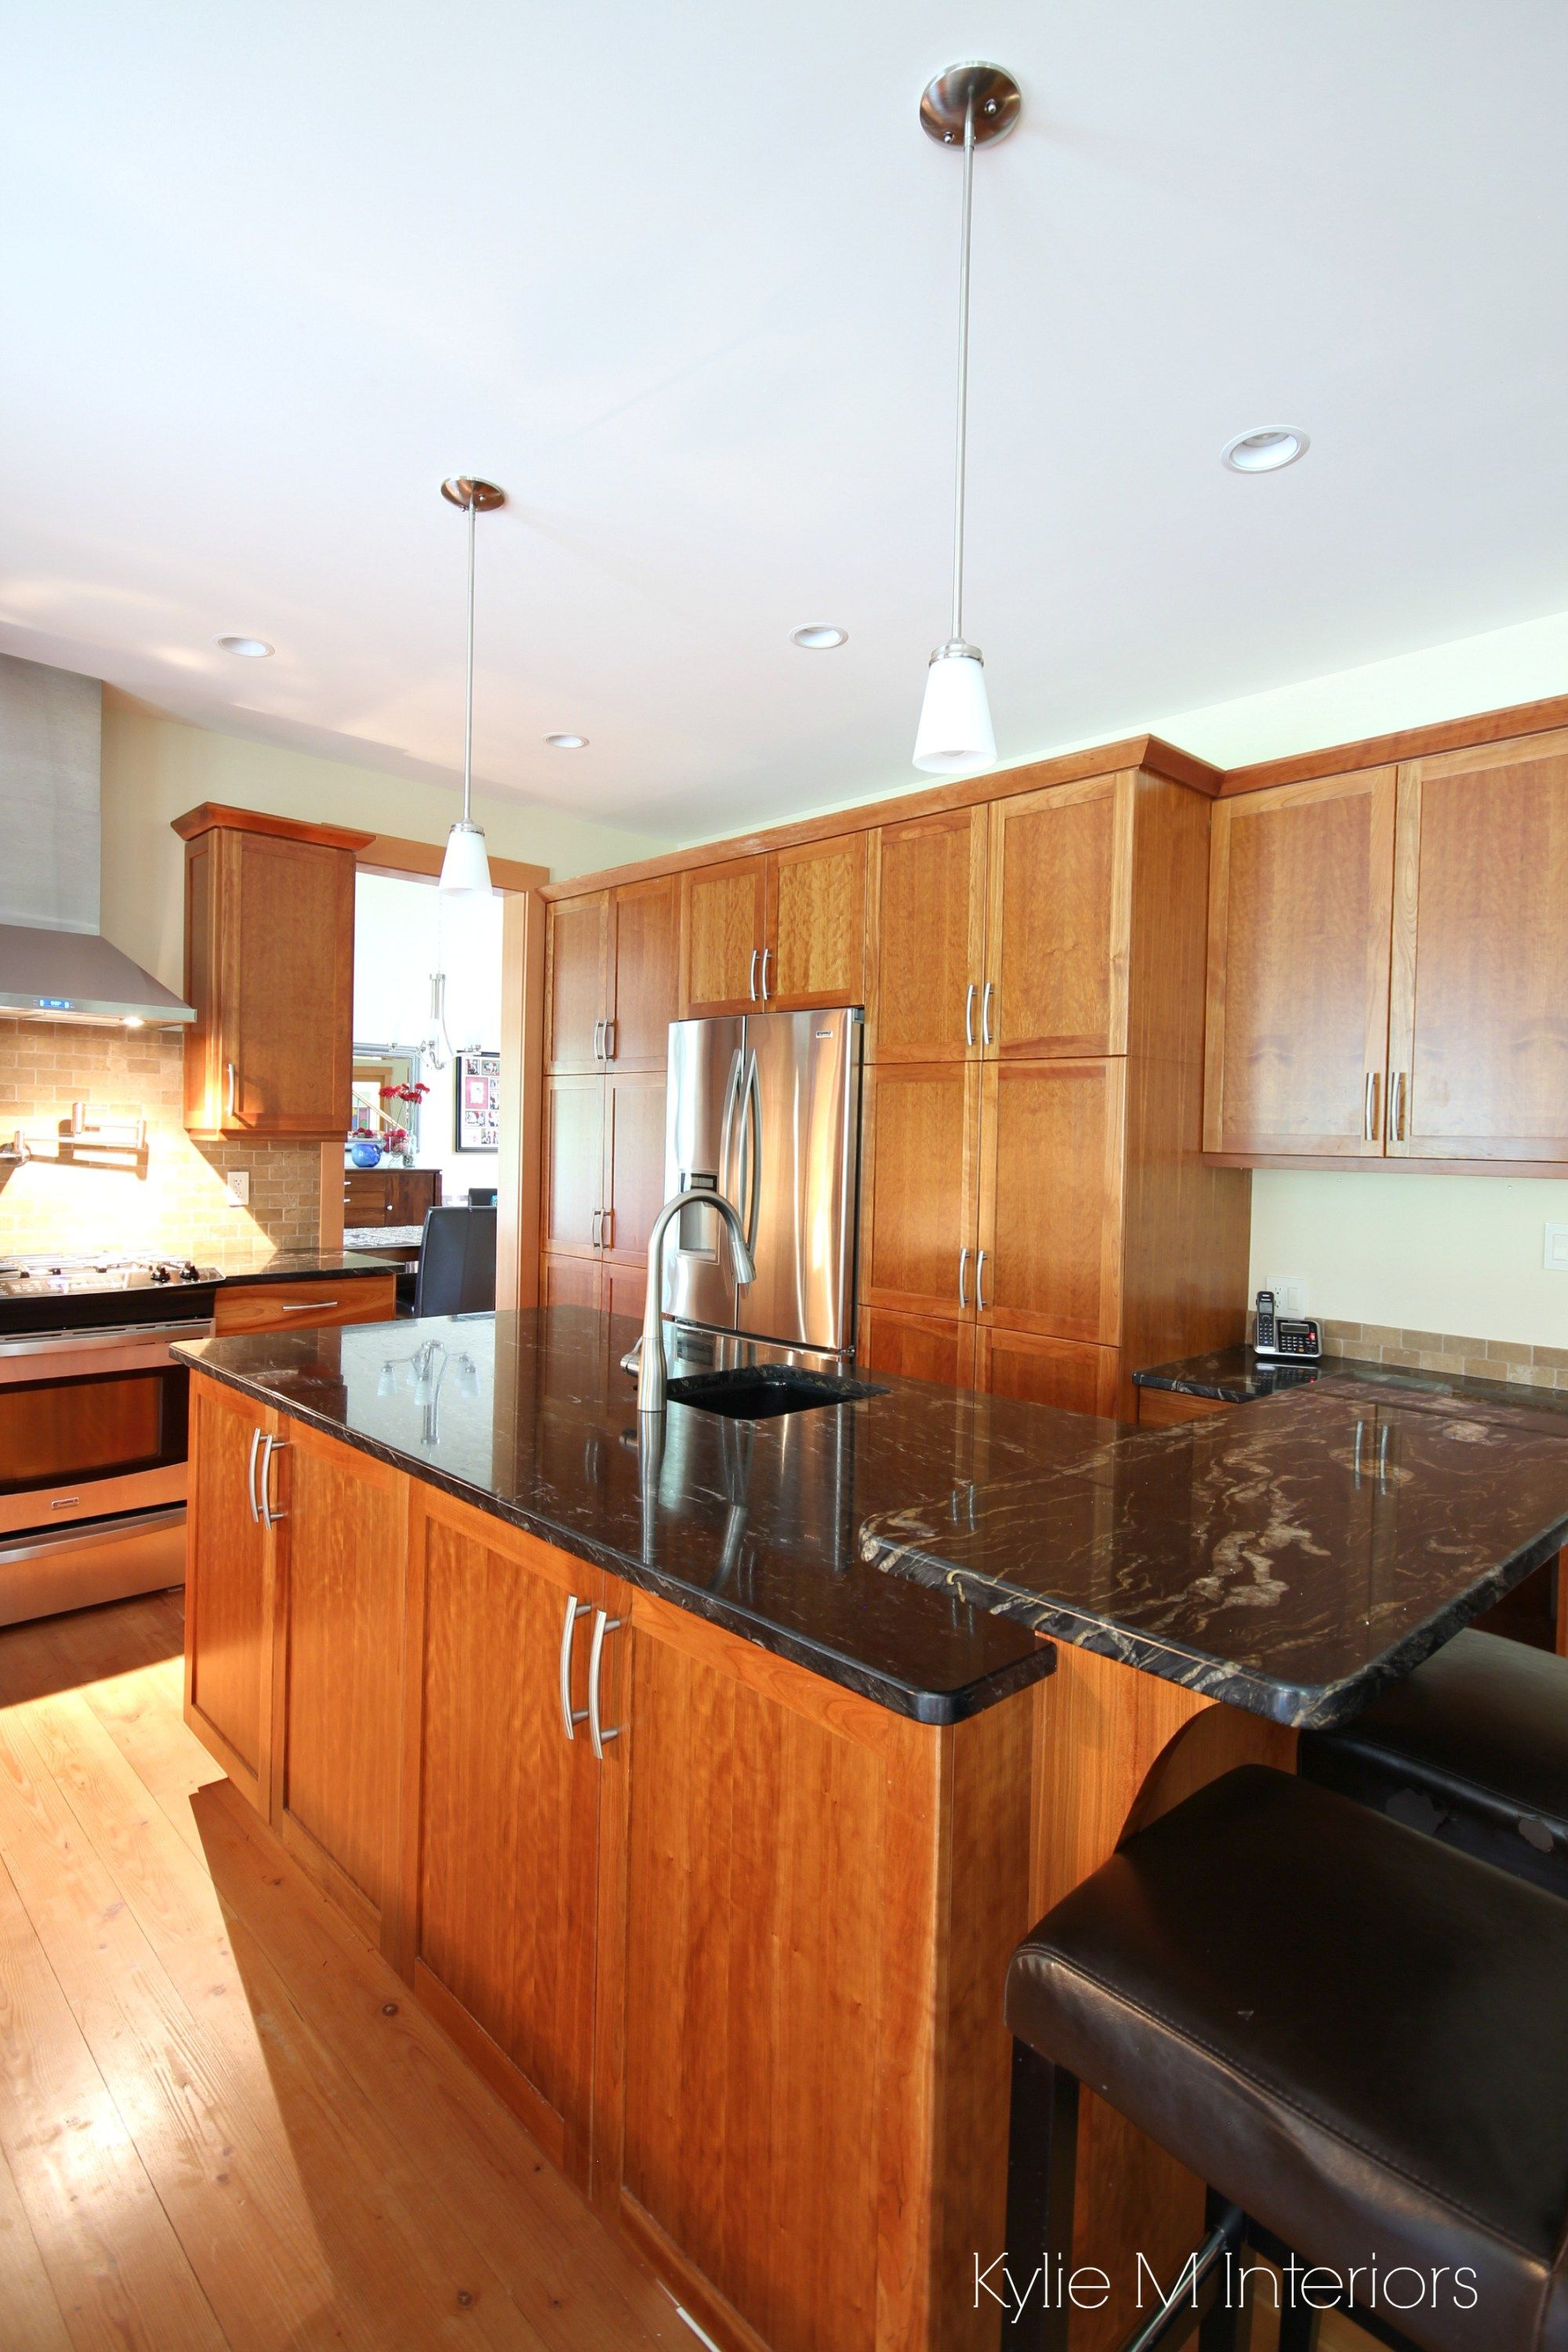 A Beautiful Wood And Granite Kitchen Design Kitchen Design Kitchen Cabinet Design Replacing Kitchen Countertops